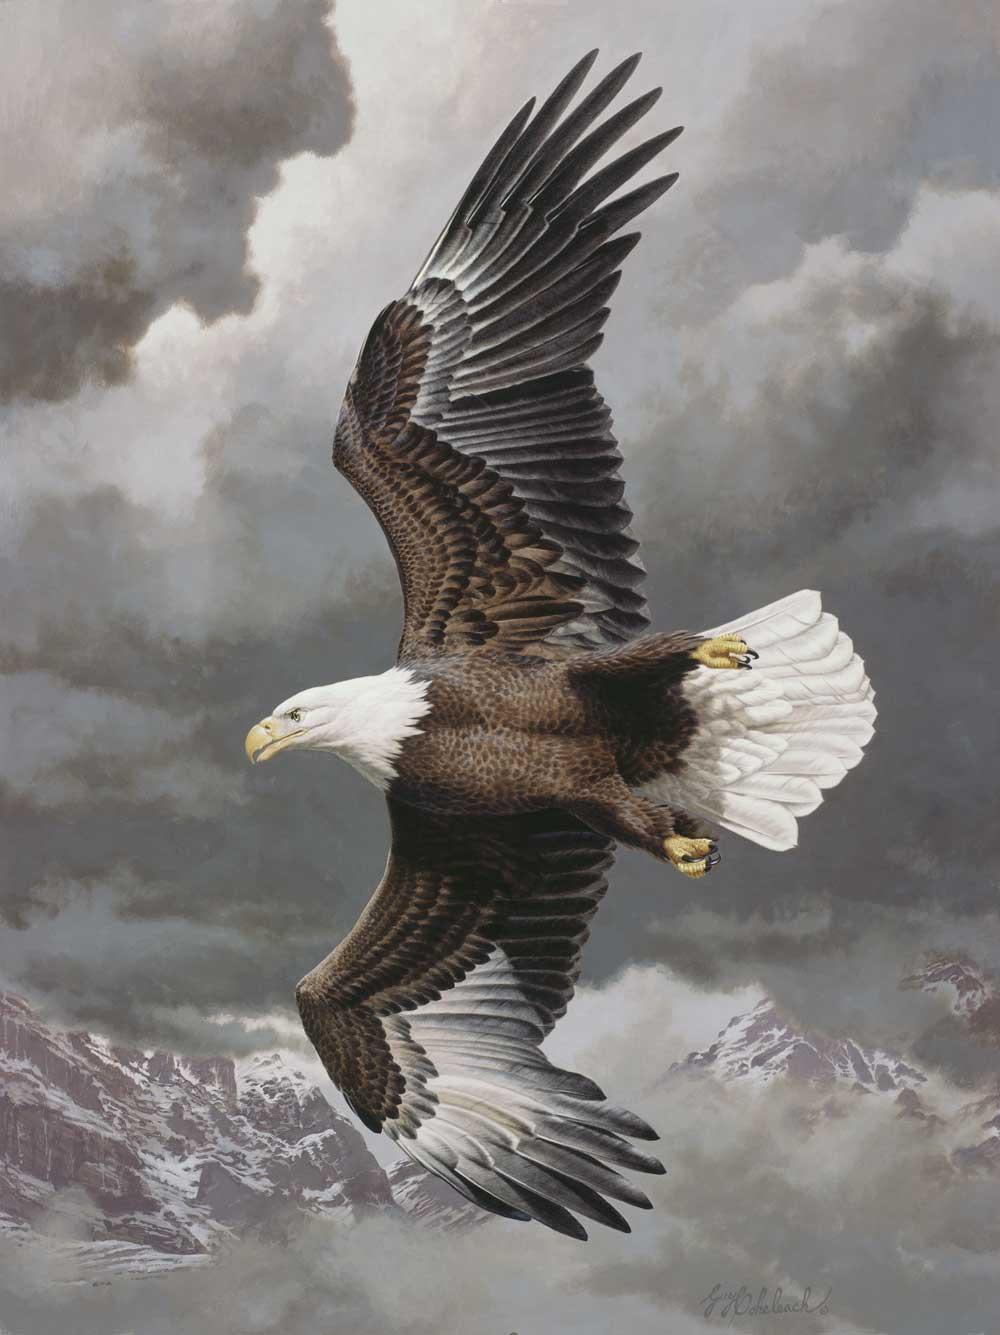 """Vanishing Grandeur""  -  30"" x 40"" ""Vanishing Grandeur""  Birds of Prey  Raptors"